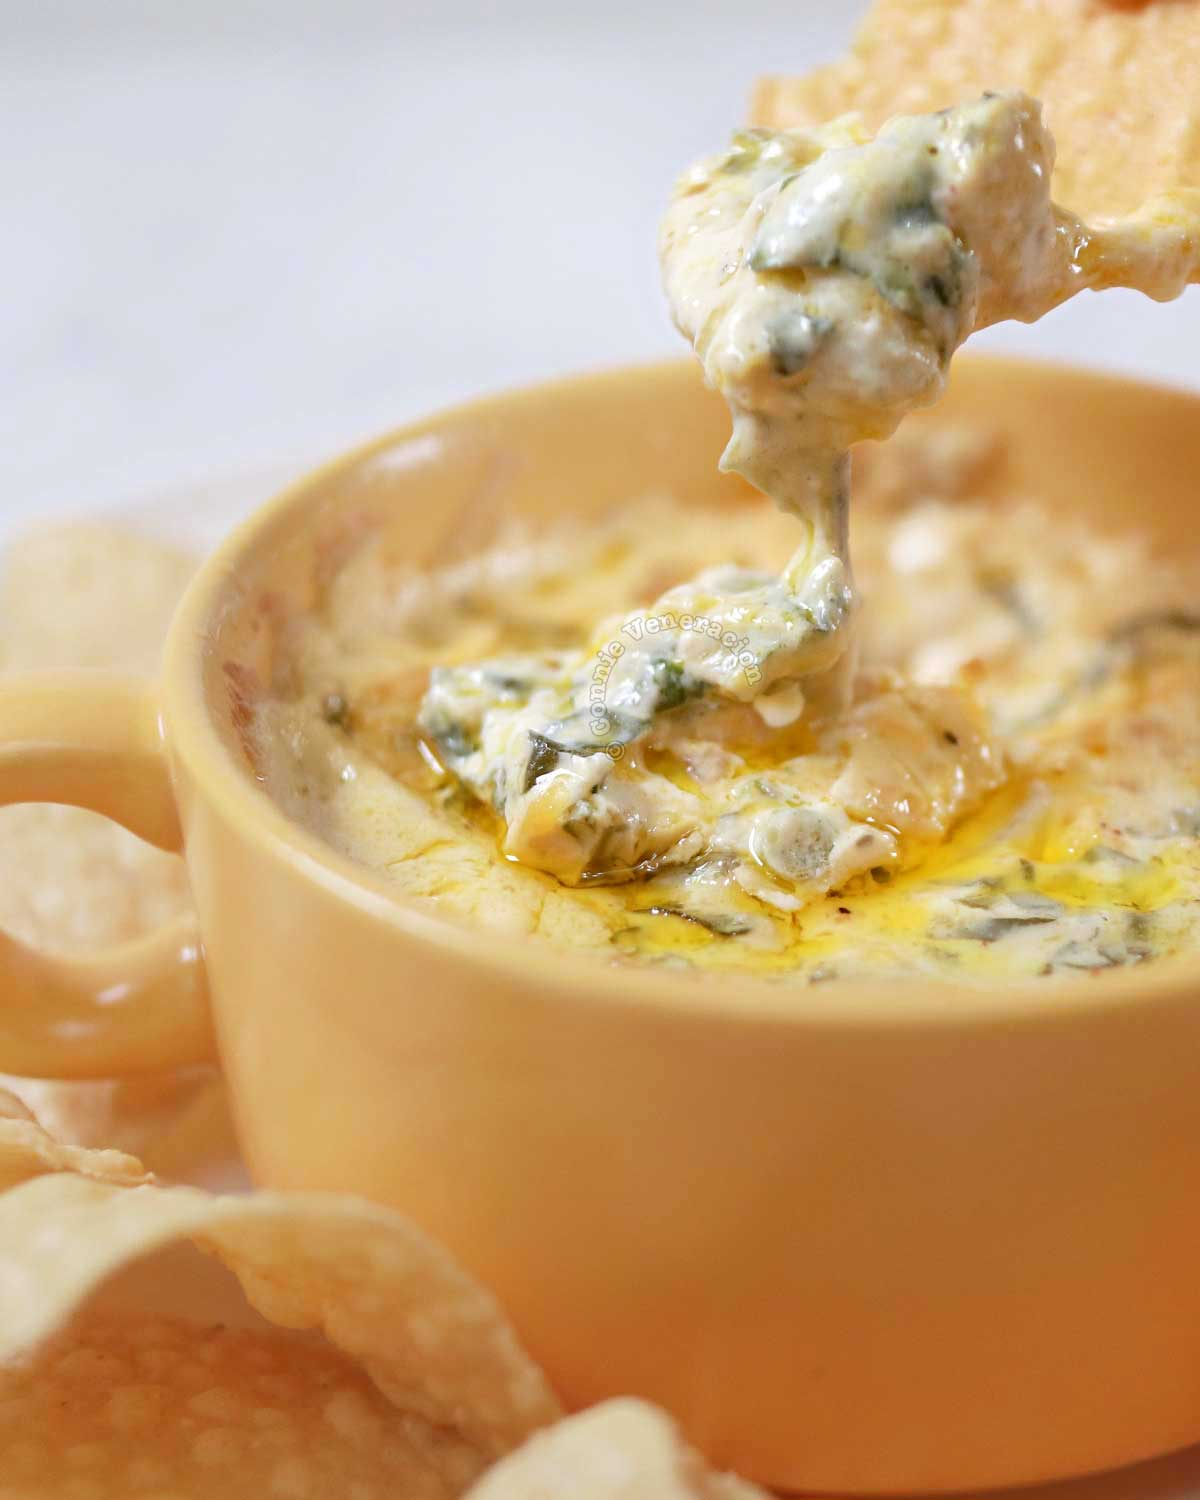 Scooping spinach artichoke dip with tortilla chip